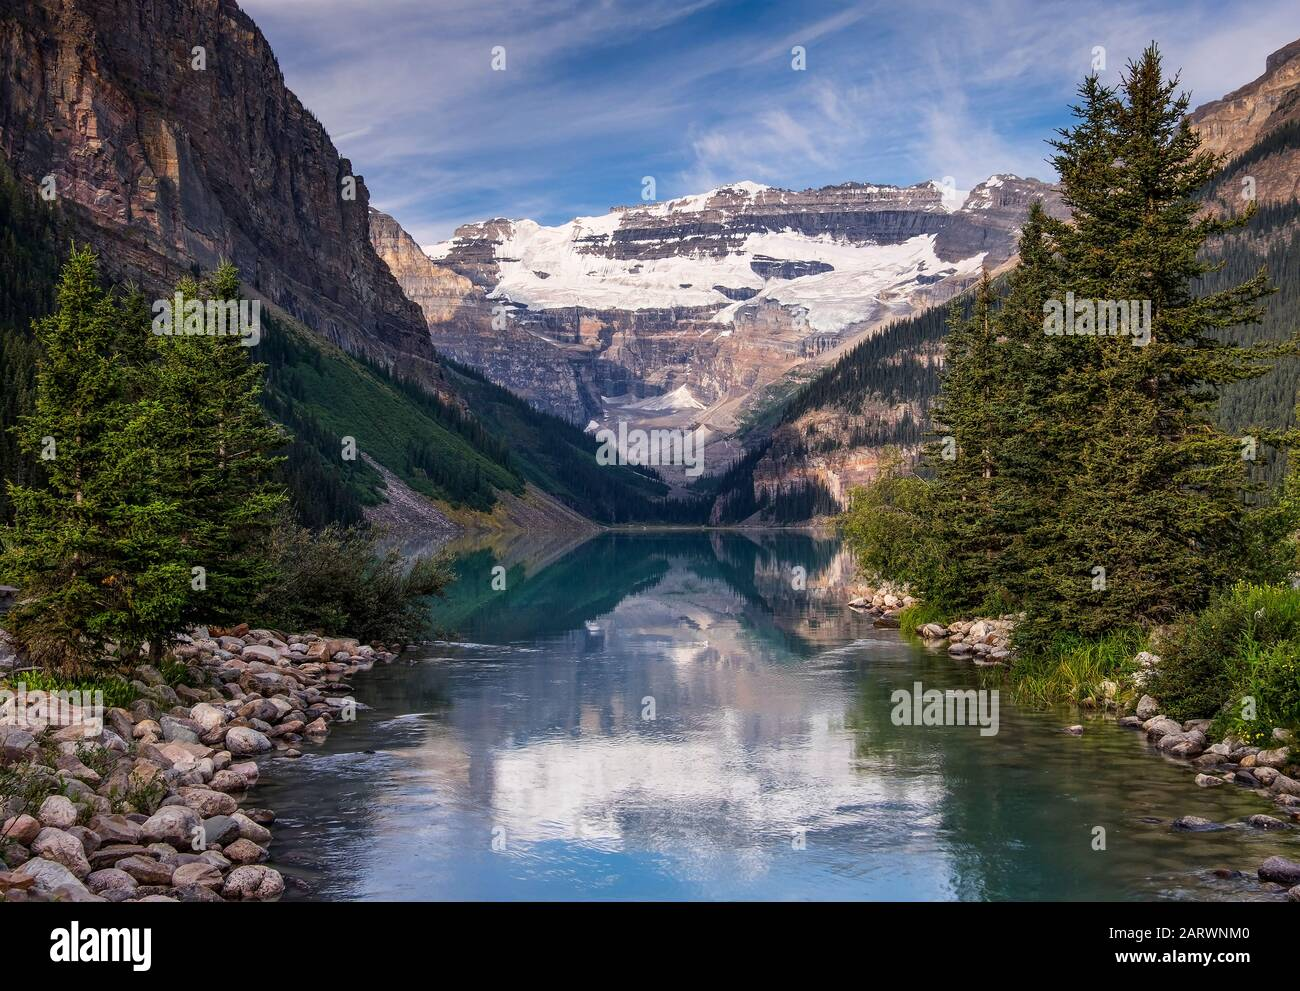 Lake Louise and The Victoria Glacier, Lake Louise, Banff National Park, Canadian Rockies, Canada Stock Photo